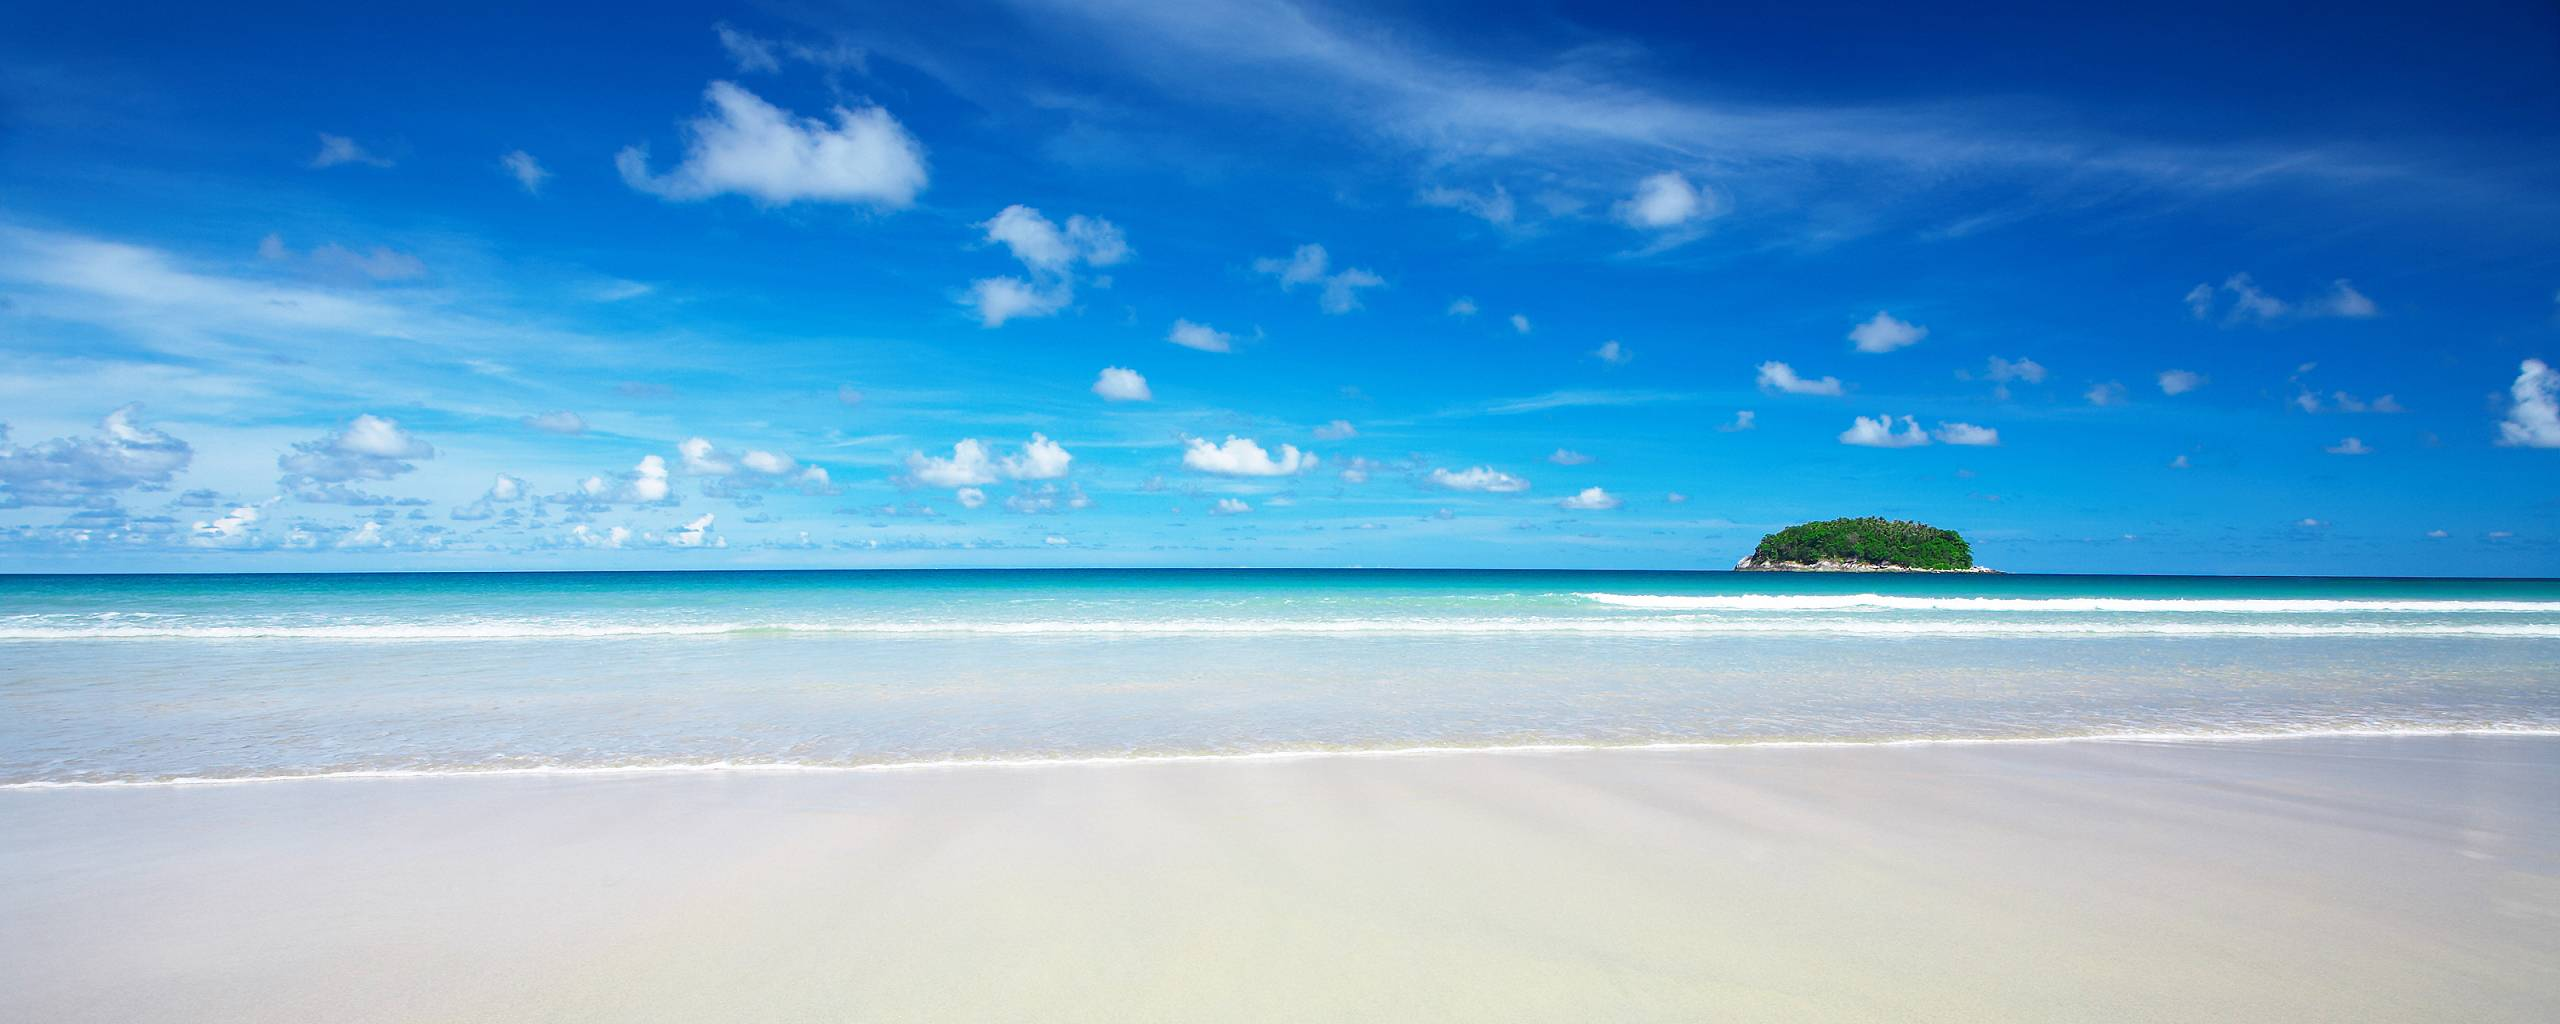 Beach Paradise Wallpapers 2560x1024